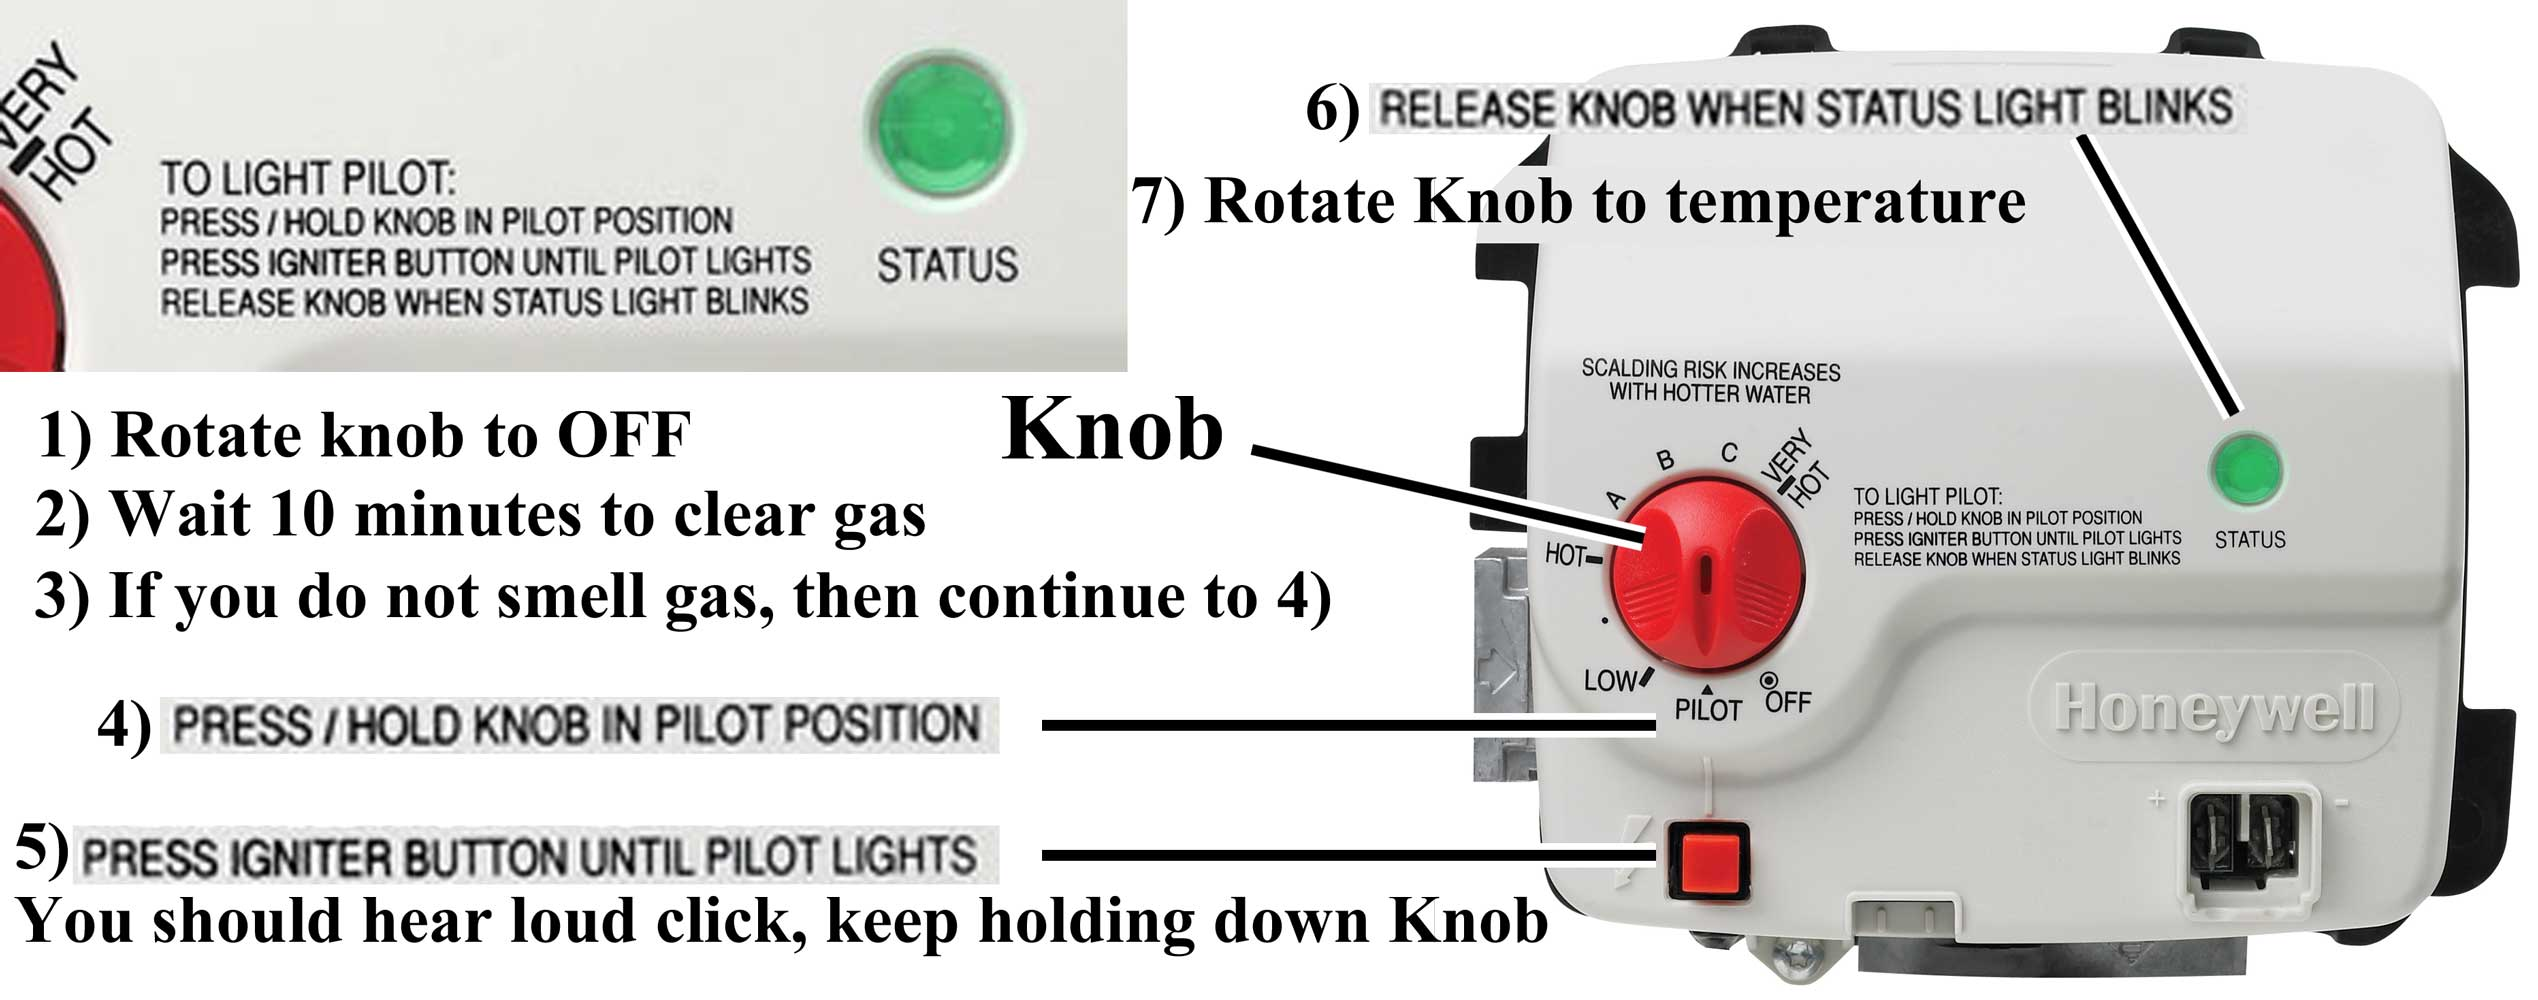 Kenmore Power Miser 6 Pilot Light Goes Out